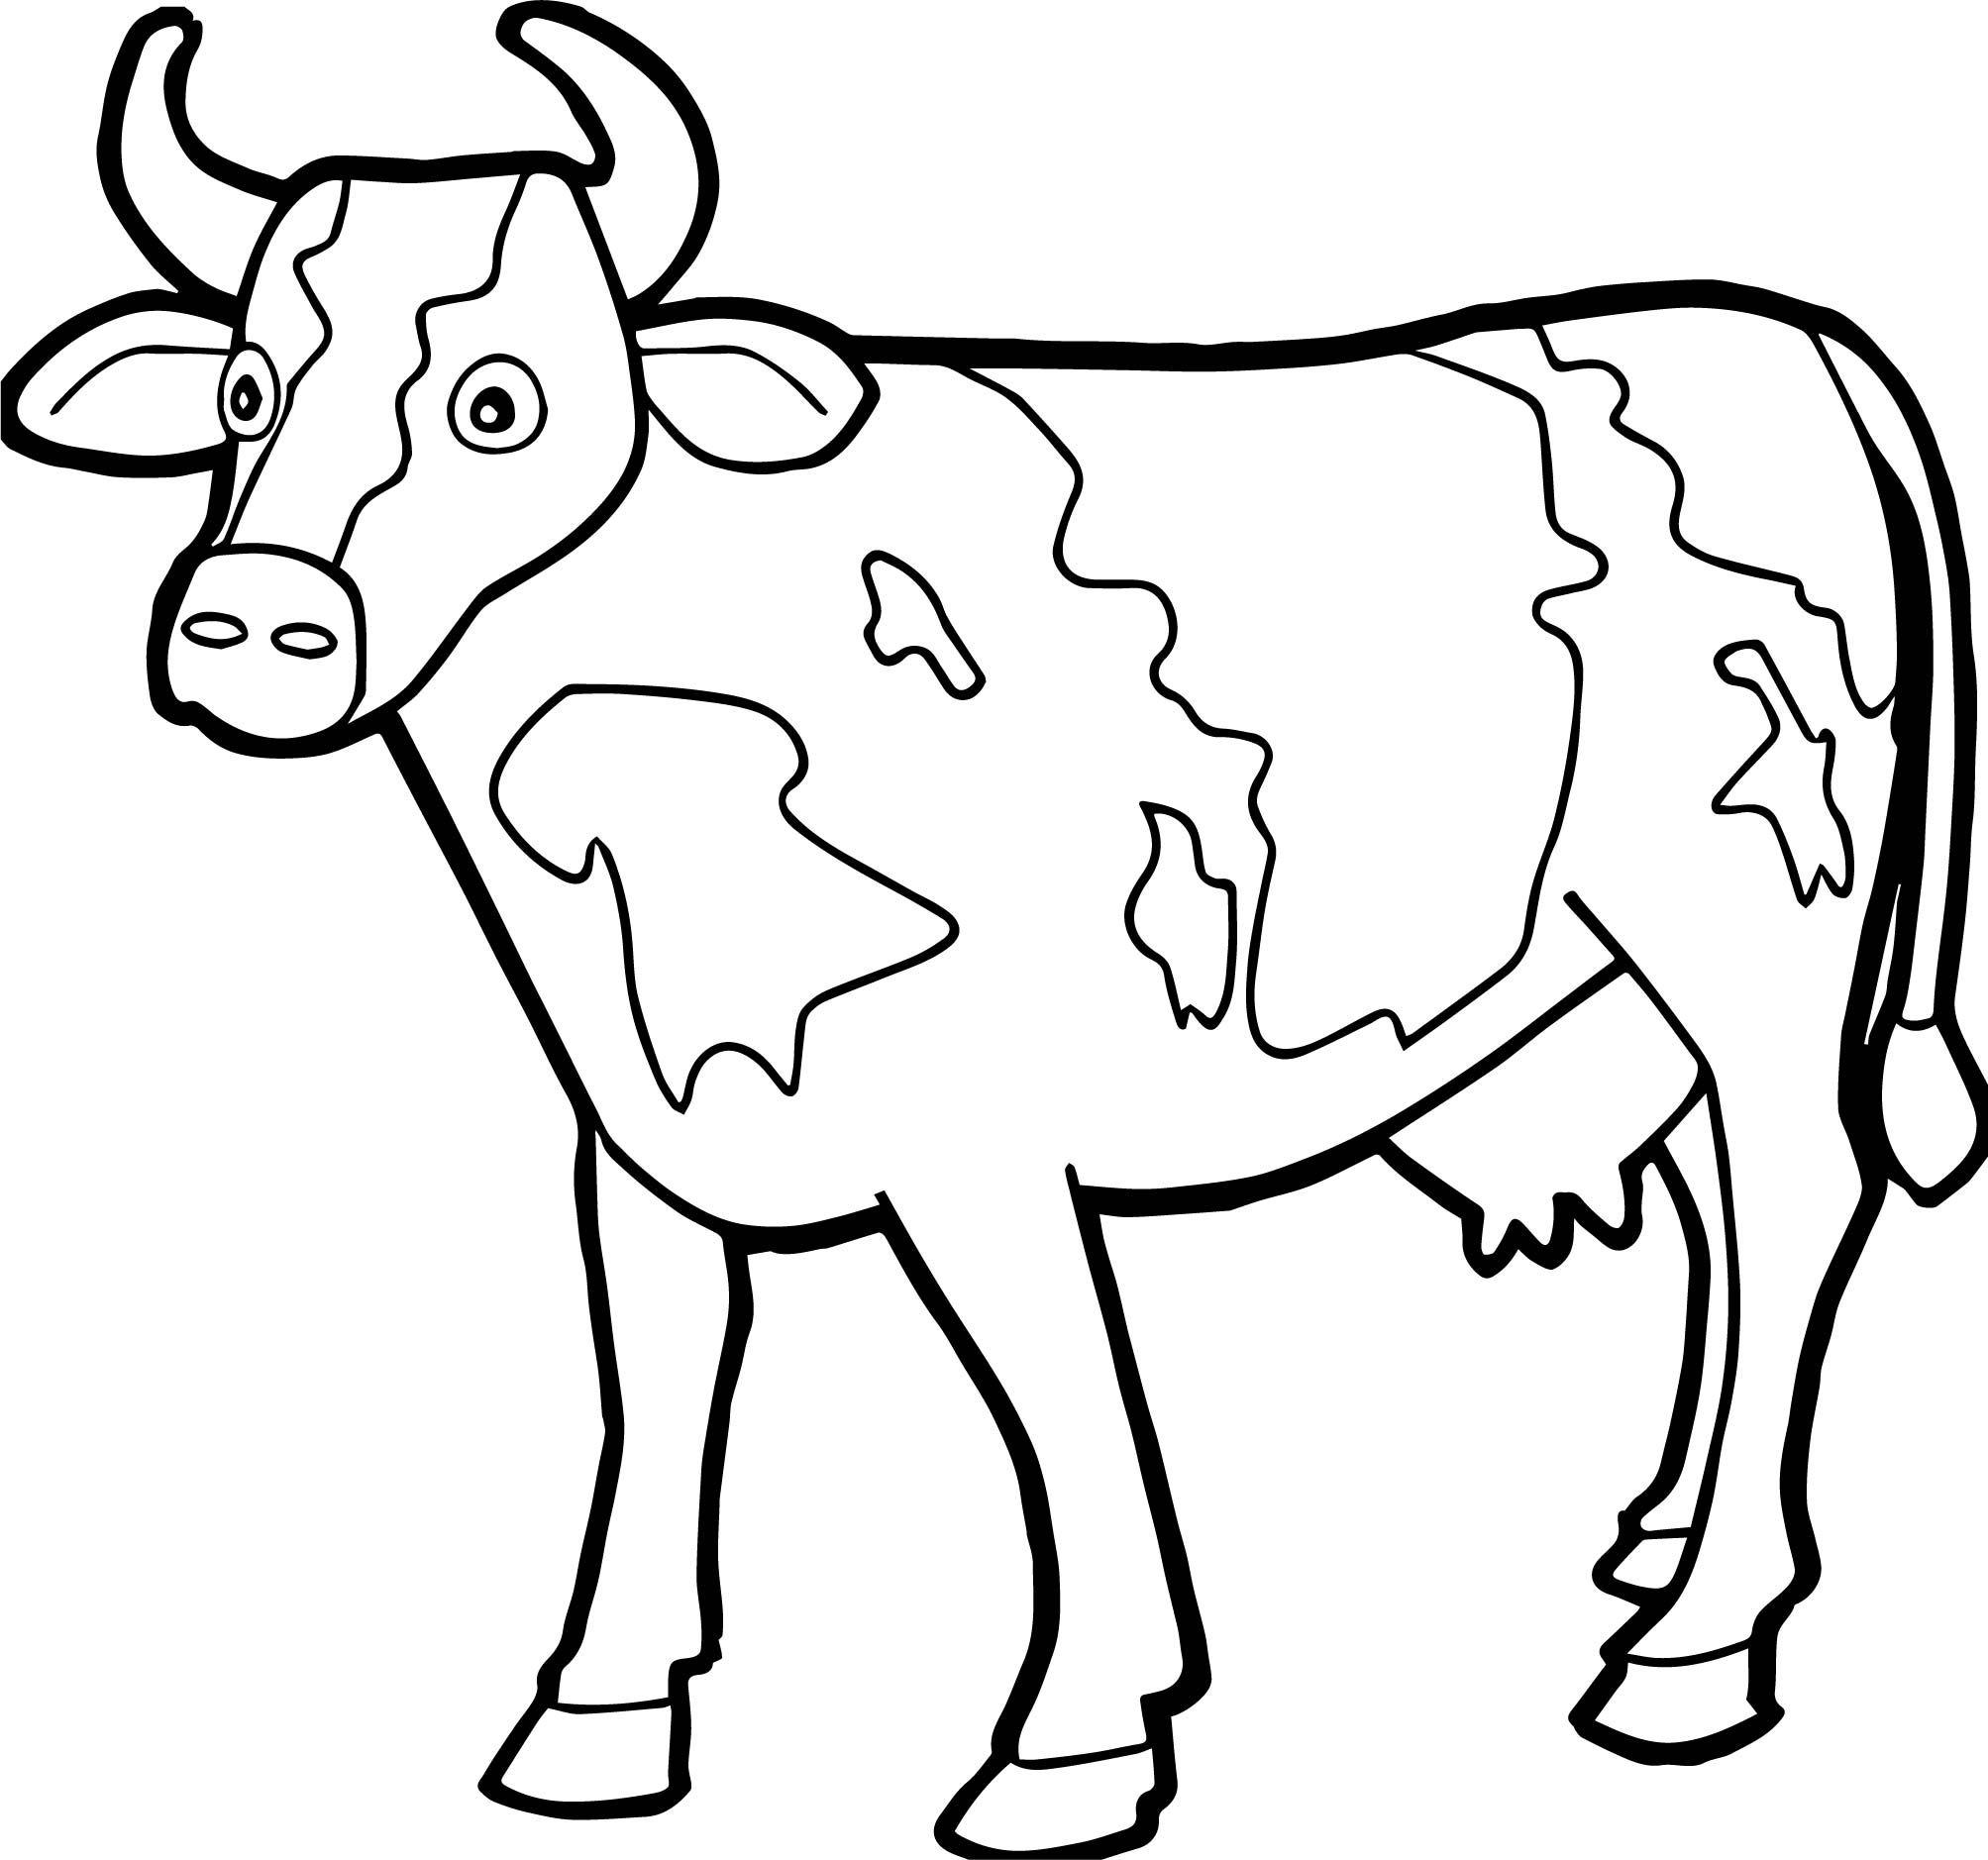 Nice Farm Animal Staying Cow Coloring Page Cow Coloring Pages Farm Animal Coloring Pages Animal Coloring Pages